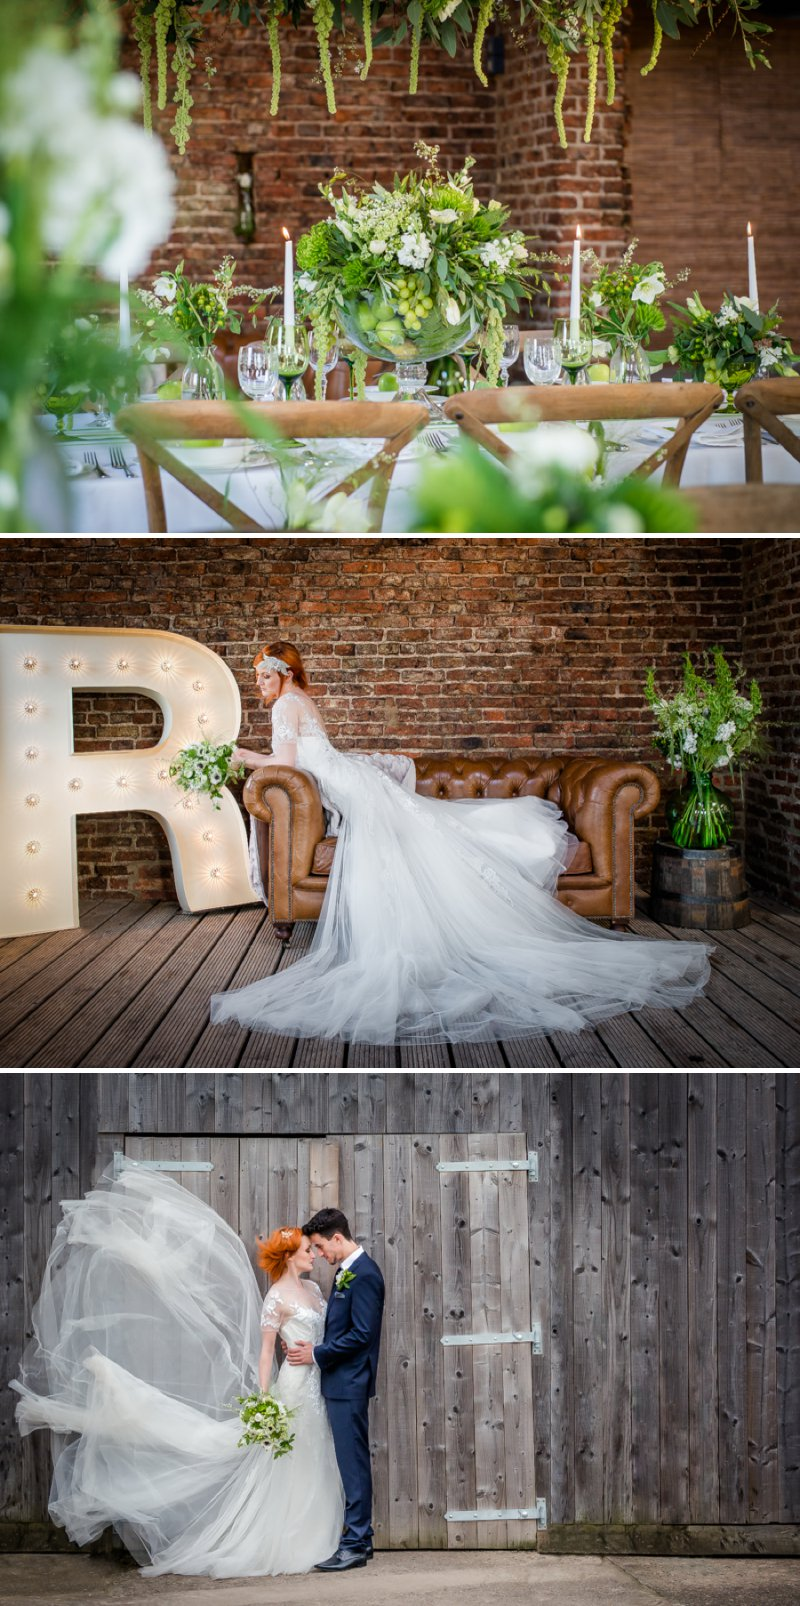 Rustic Glamour Inspired Shoot At York Maze With An Apple Green Colour Scheme Lots of Green Foliage And White Flowers With Images By Dominic Wright Photography 1